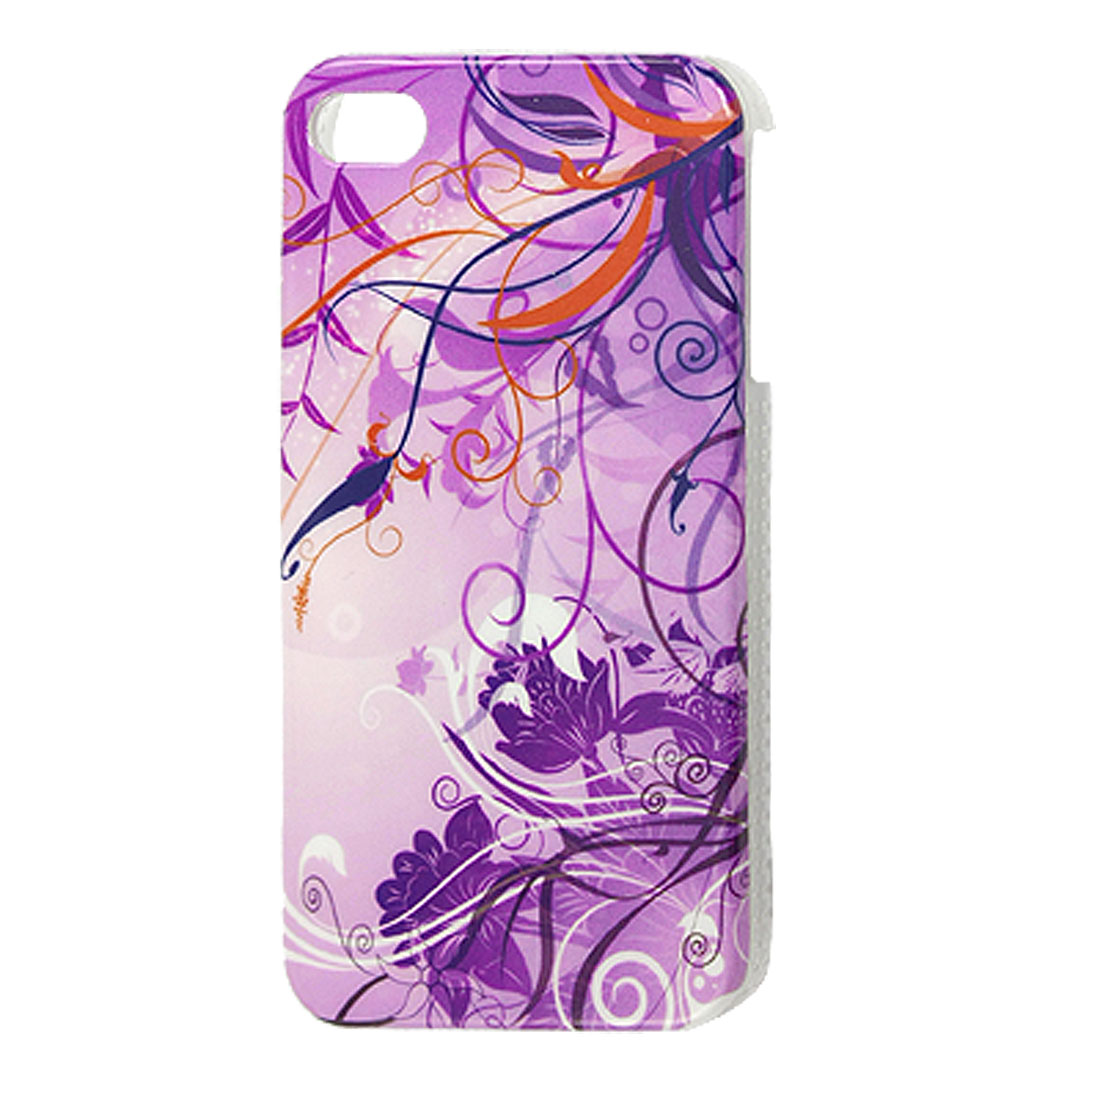 Hard Plastic Floral Back Case Cover Shell Purple for iPhone 4 4G 4S